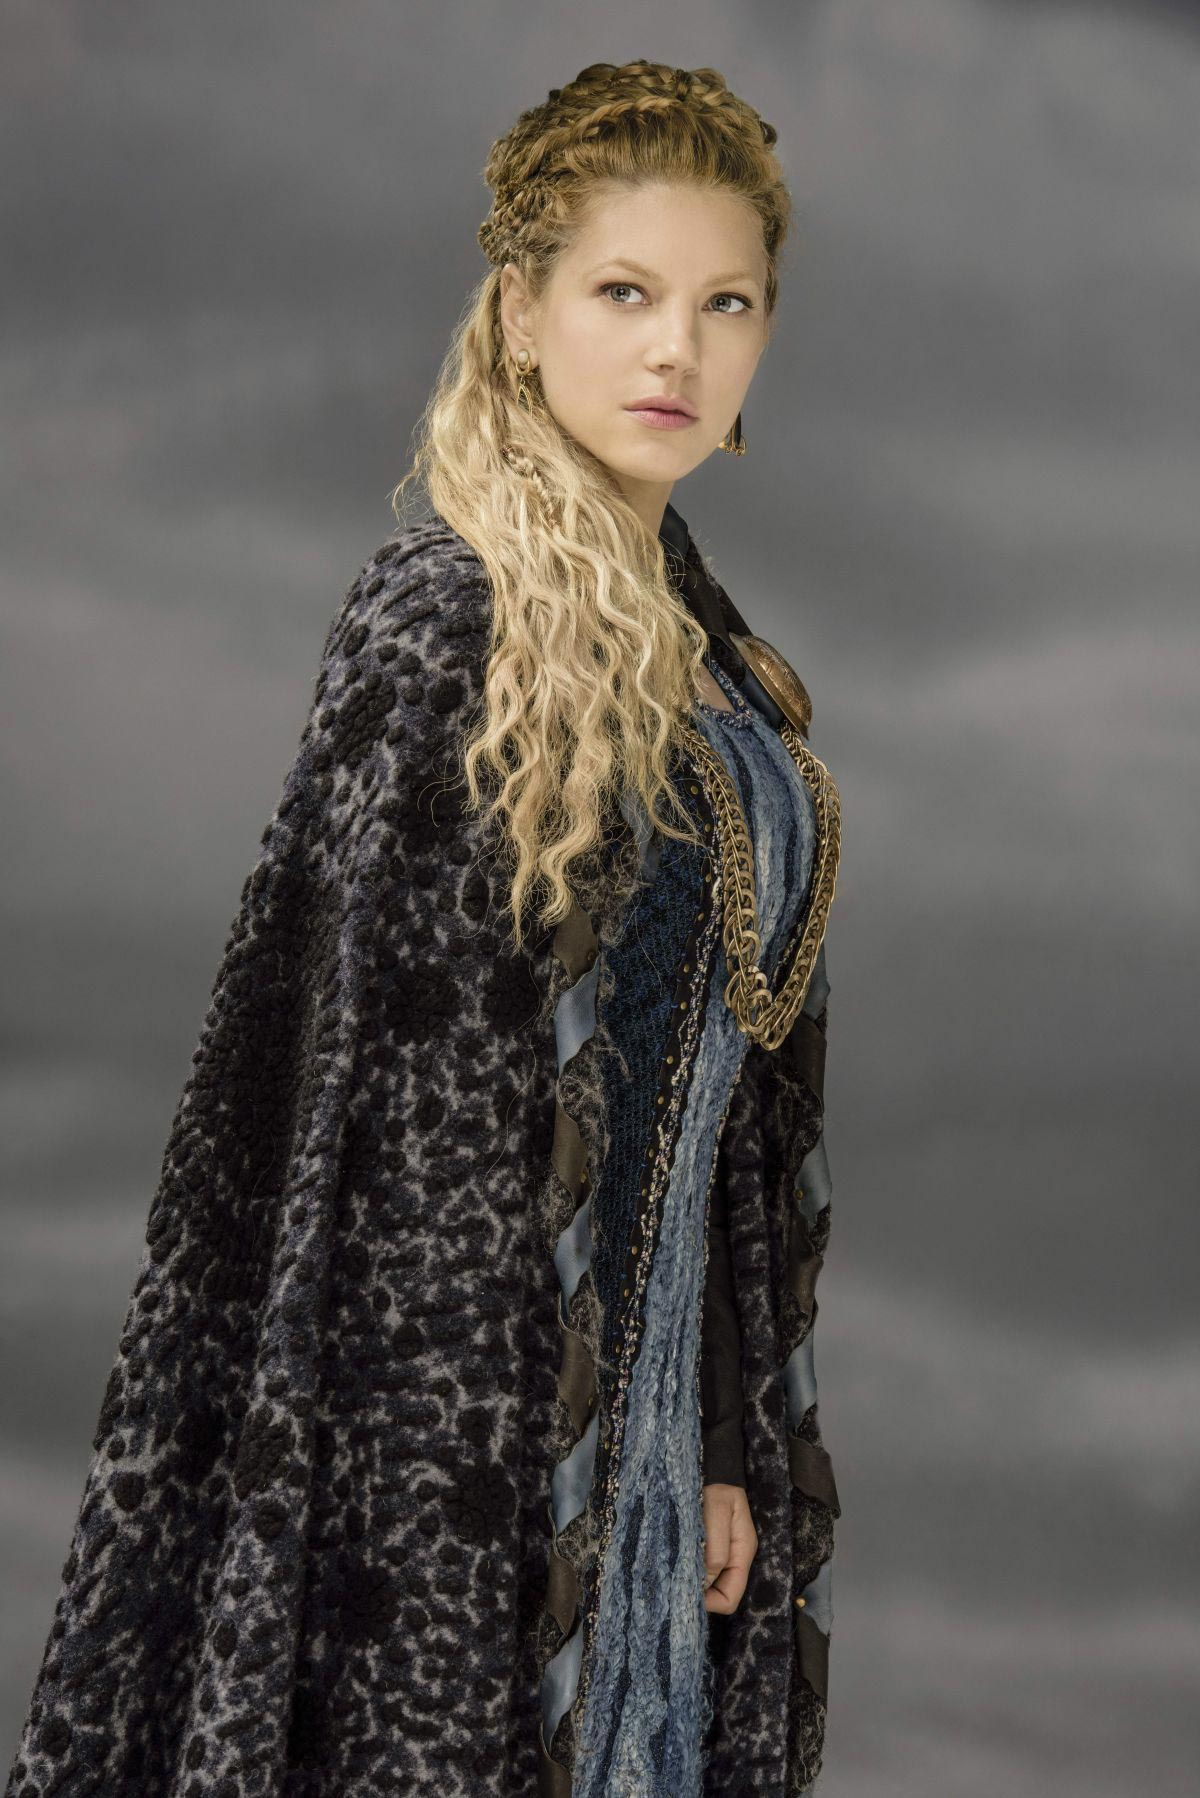 Katheryn Winnick for Vikings, Season 3 Promos 1